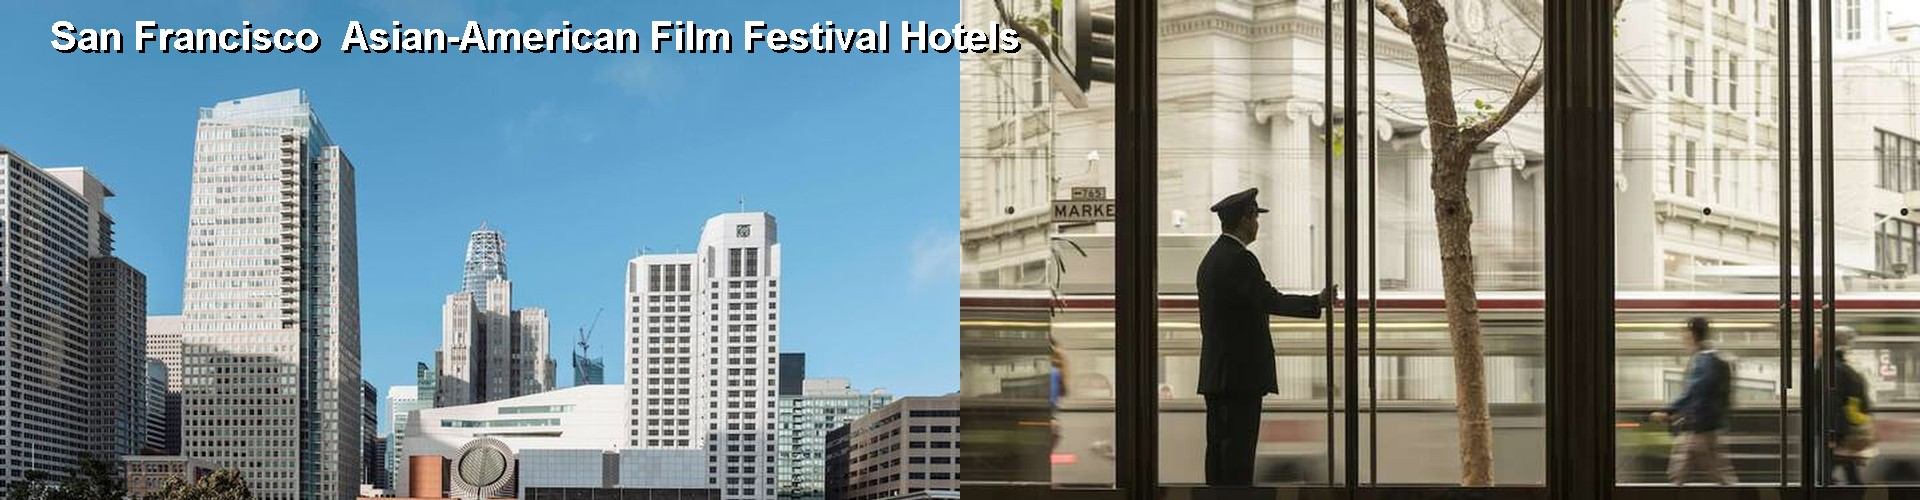 5 Best Hotels near San Francisco Asian-American Film Festival